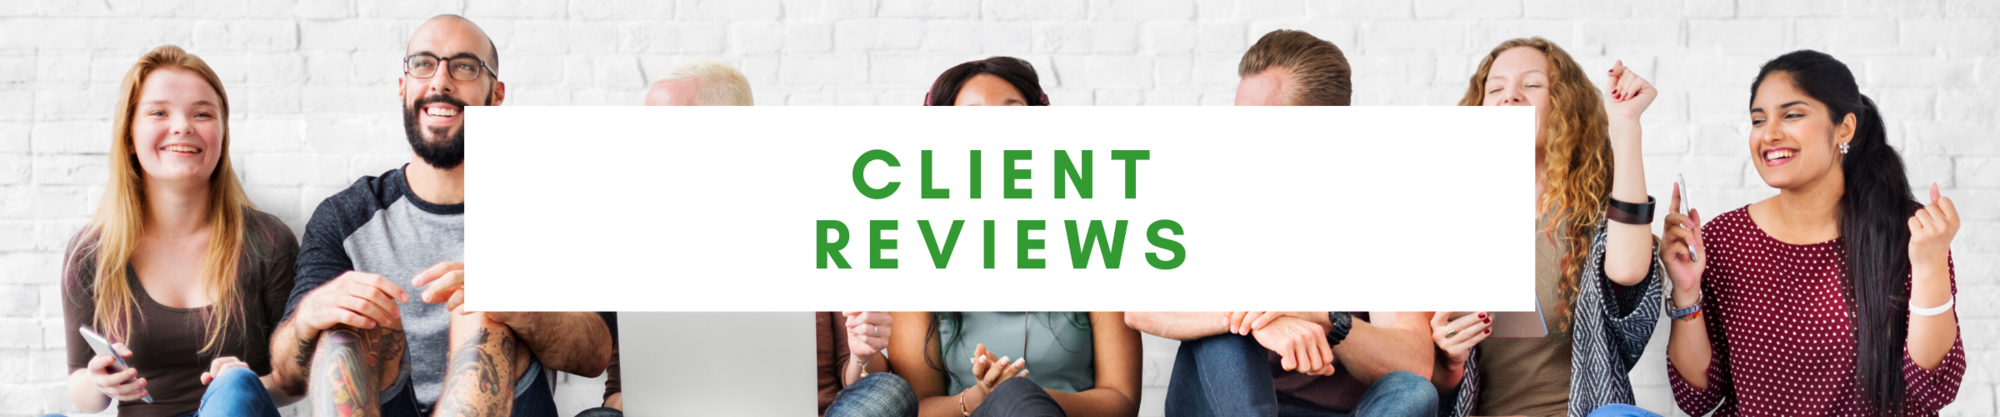 Client Reviews | John Kilby - Realtor | Kansas City Homes